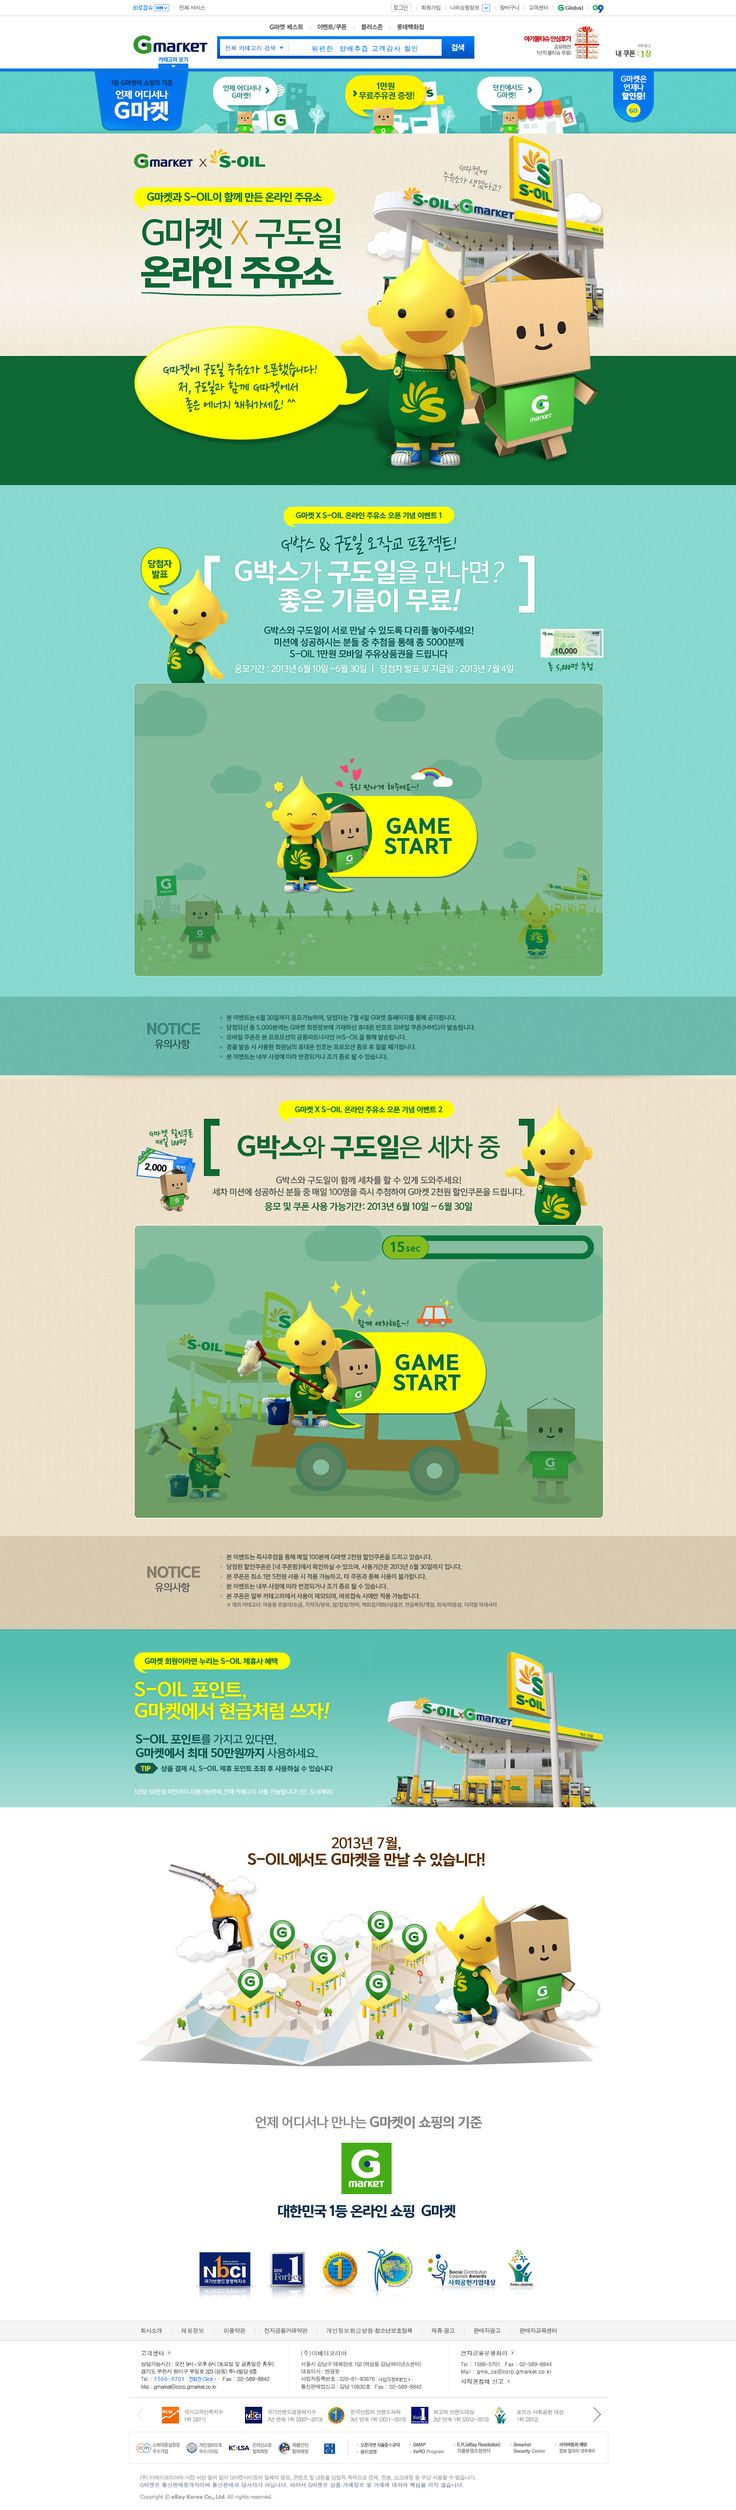 http://event.gmarket.co.kr/html_new/201306/130610_campaign/s_oil.asp